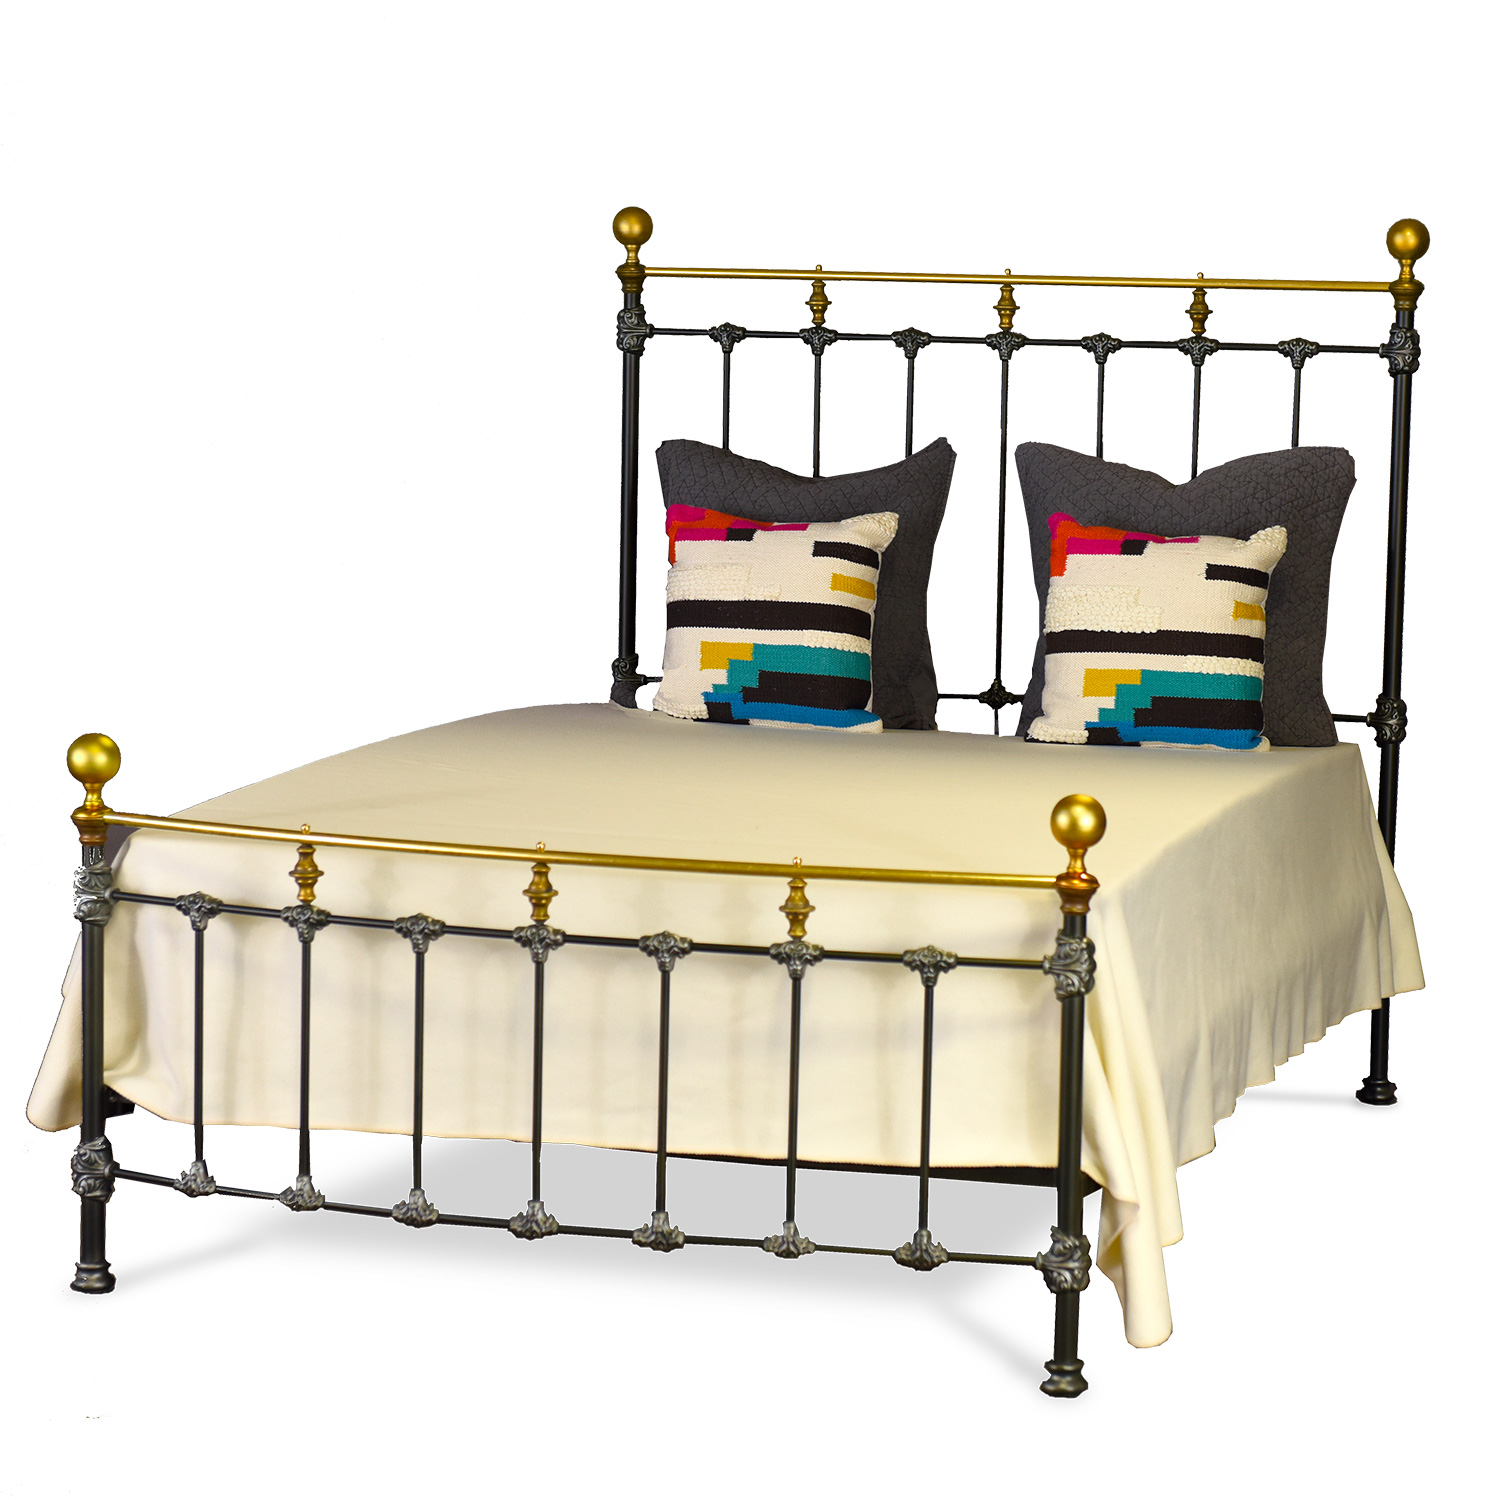 152 Excelsior Iron Bed